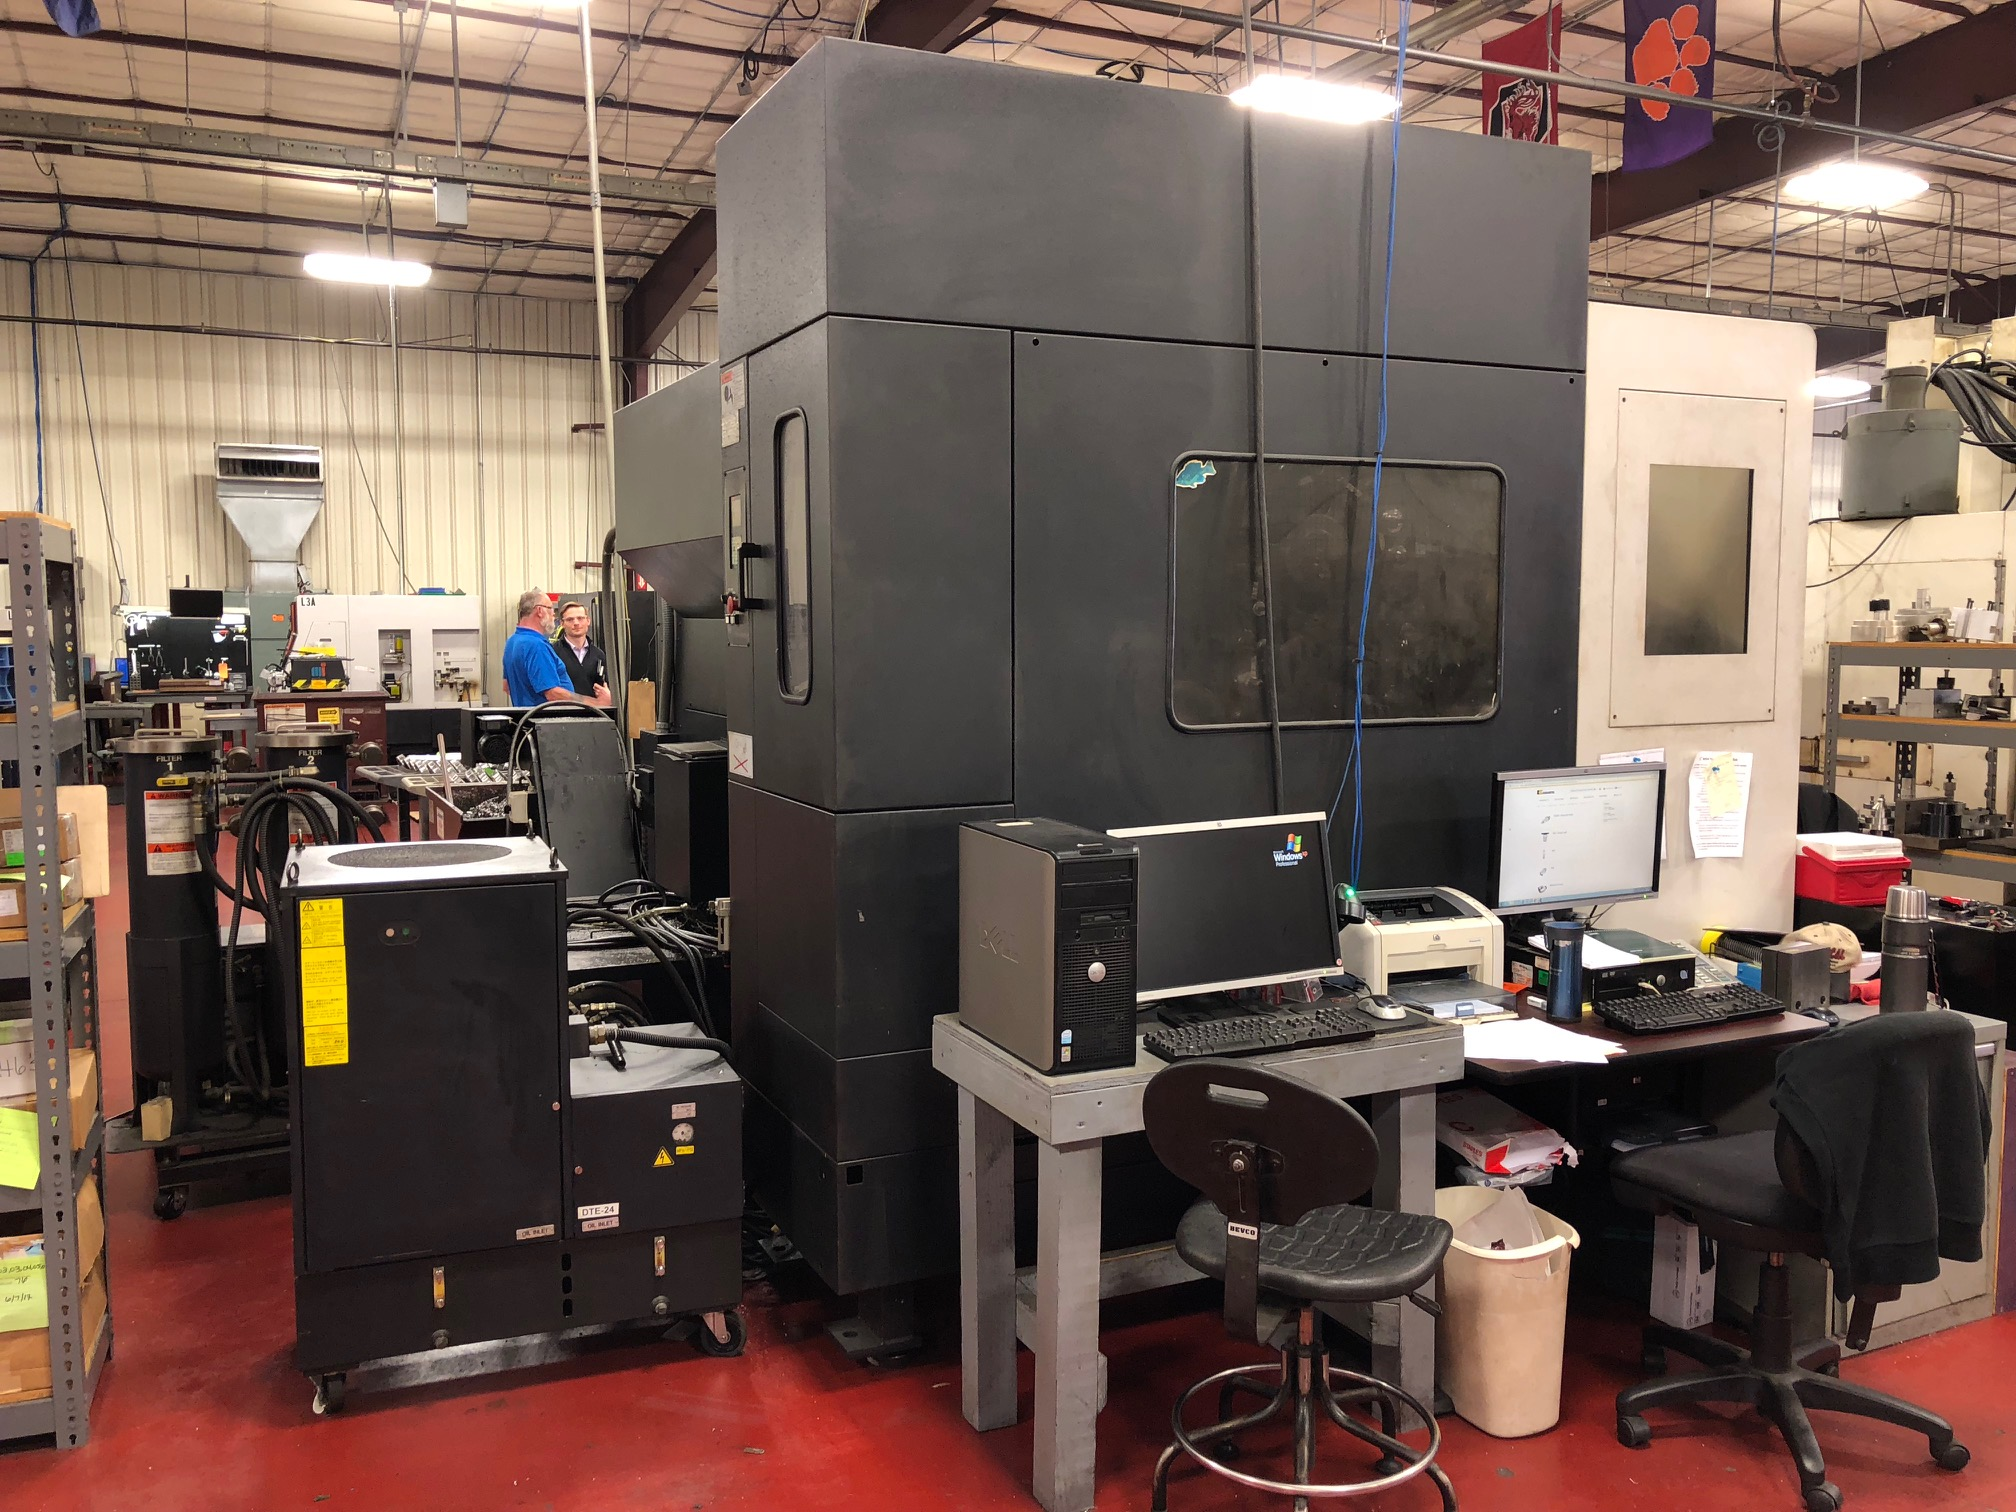 """MAZAK Variaxis 500-5X, '05, Fusion, 20.20.18"""", 12000 RPM, 80 Tools, 30 HP, Cat 40, 5-Axis, Integral Trunnion, Two Pallet Changer"""